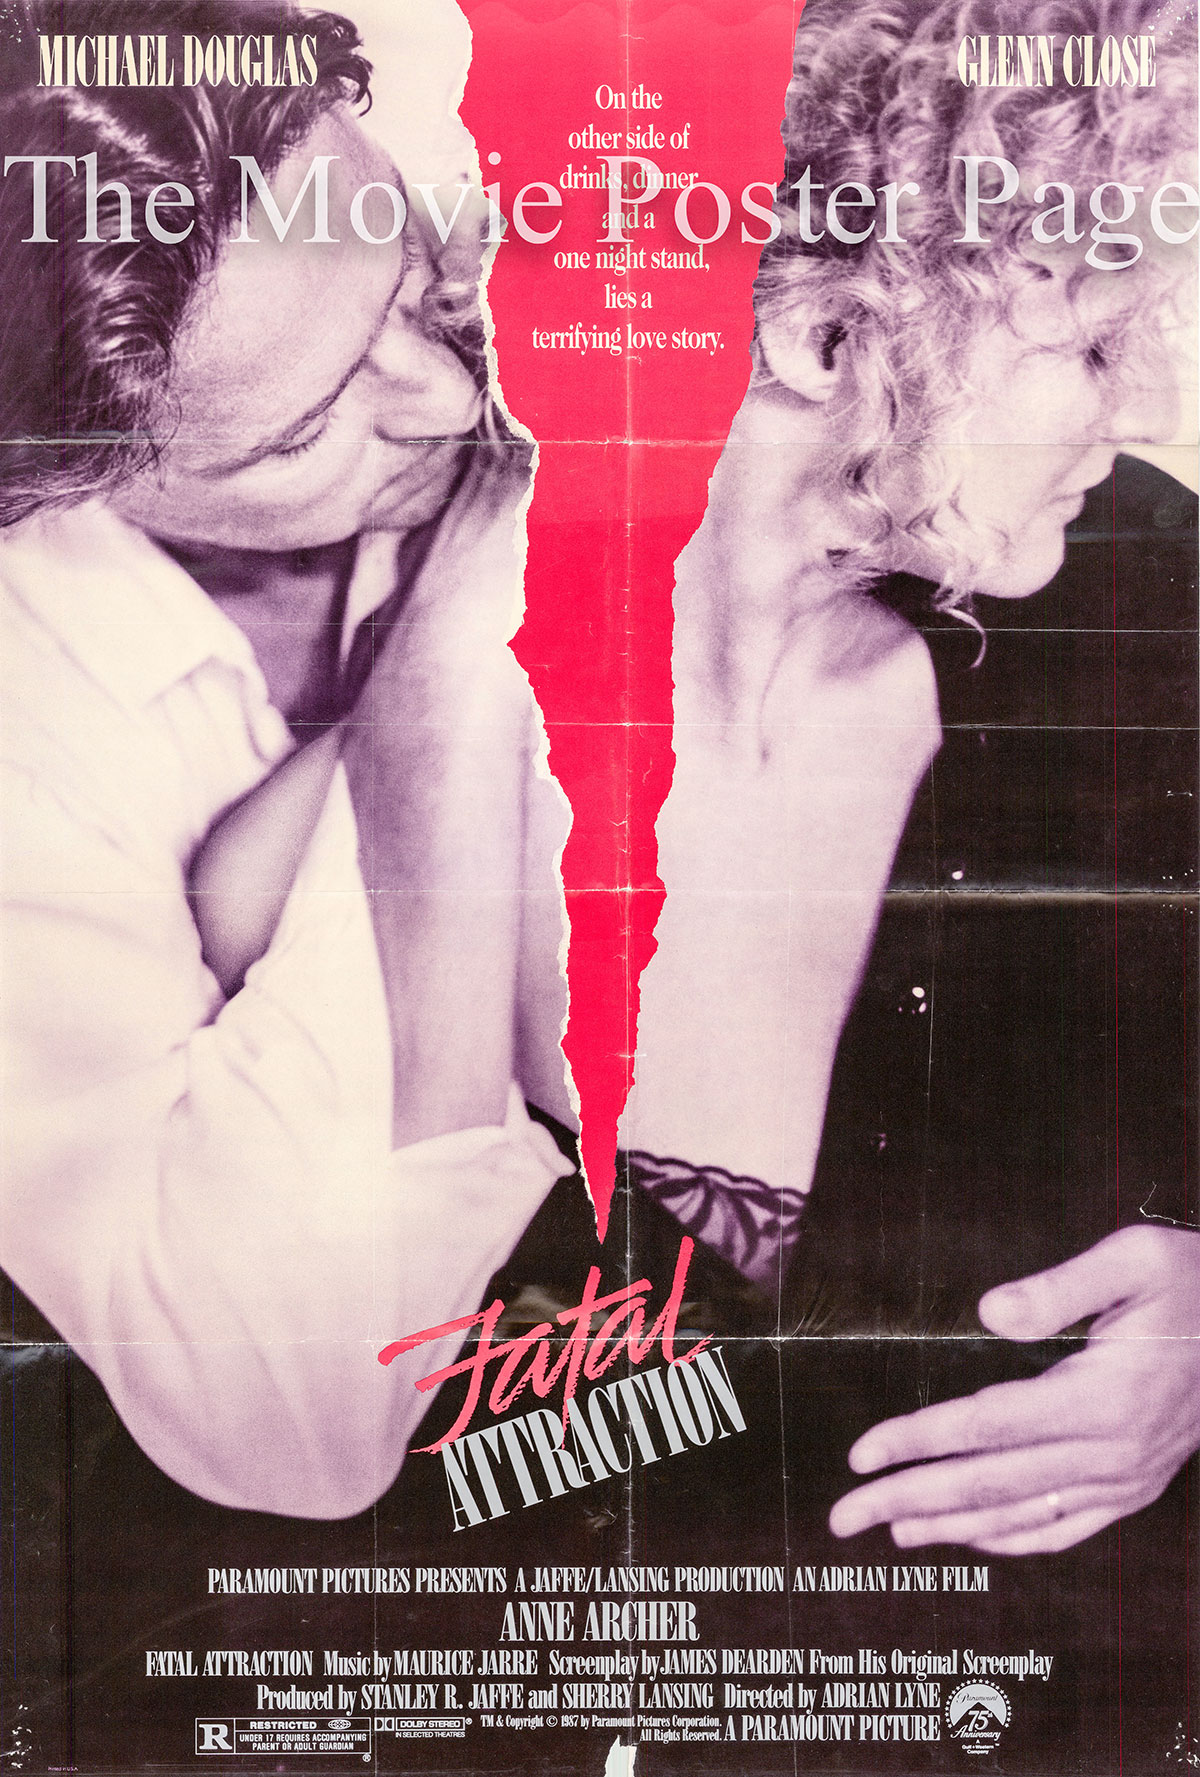 Pictured is a folded US promotional poster for the 1987 Adrian Lyne film Fatal Attraction starring Michael Douglas and Glenn Close.